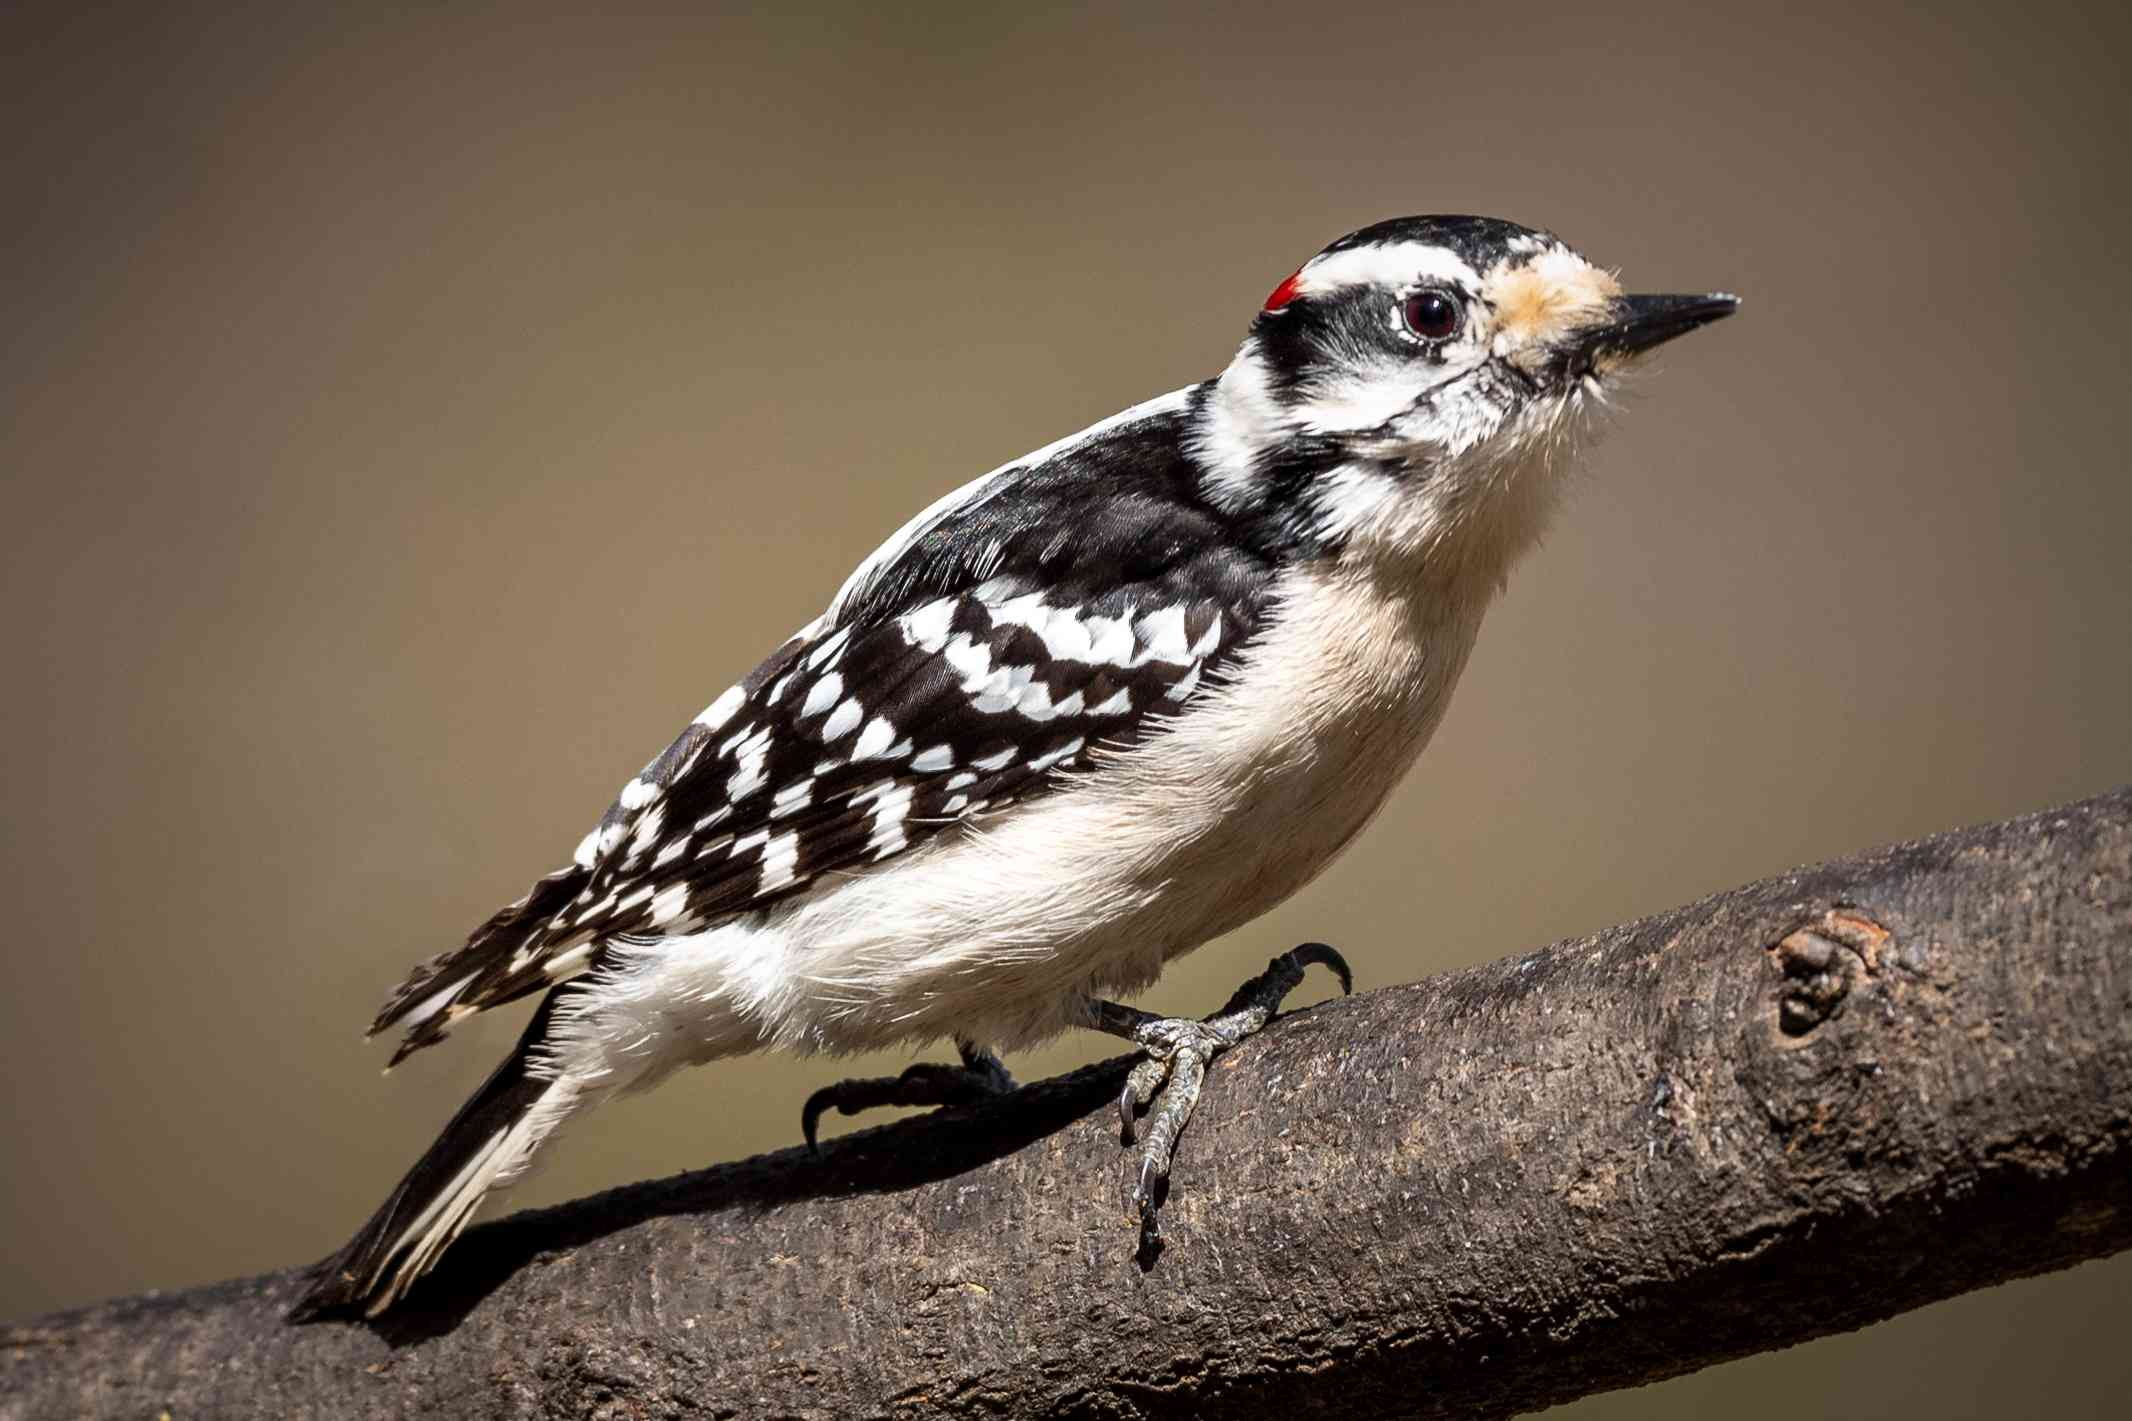 A downy woodpecker perched on a branch.